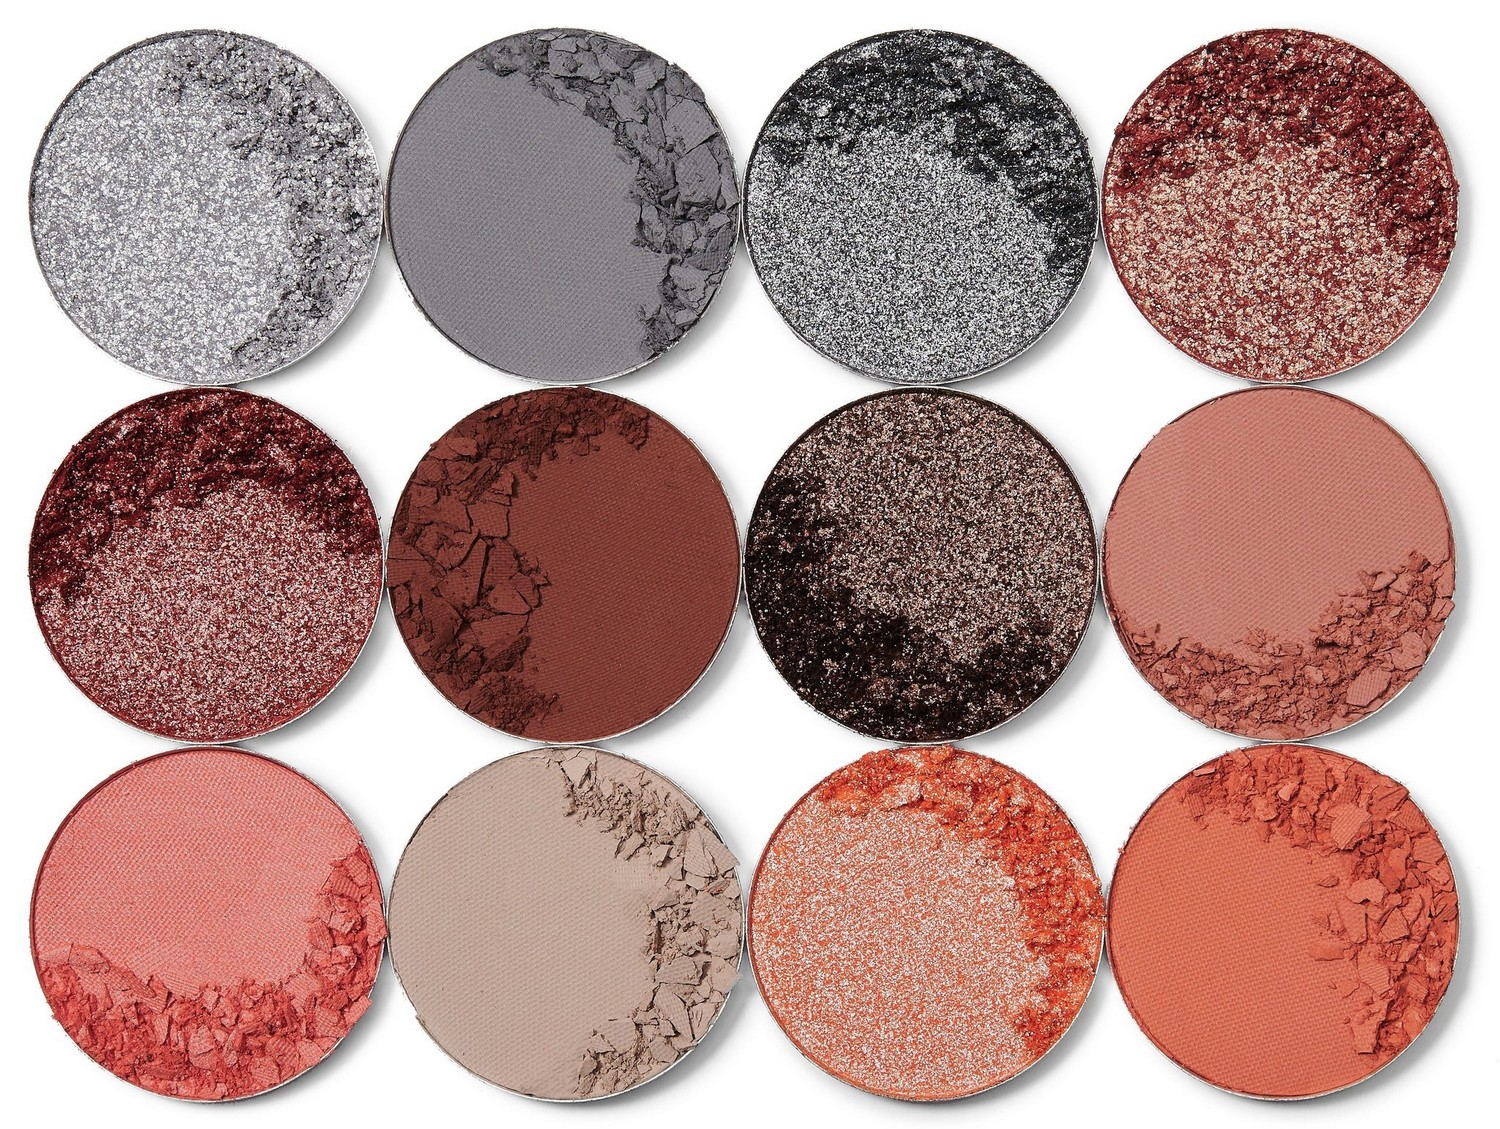 THE NUBIAN 3 CORAL EYESHADOW PALETTE JUVIAS PLACE | 12 Shades